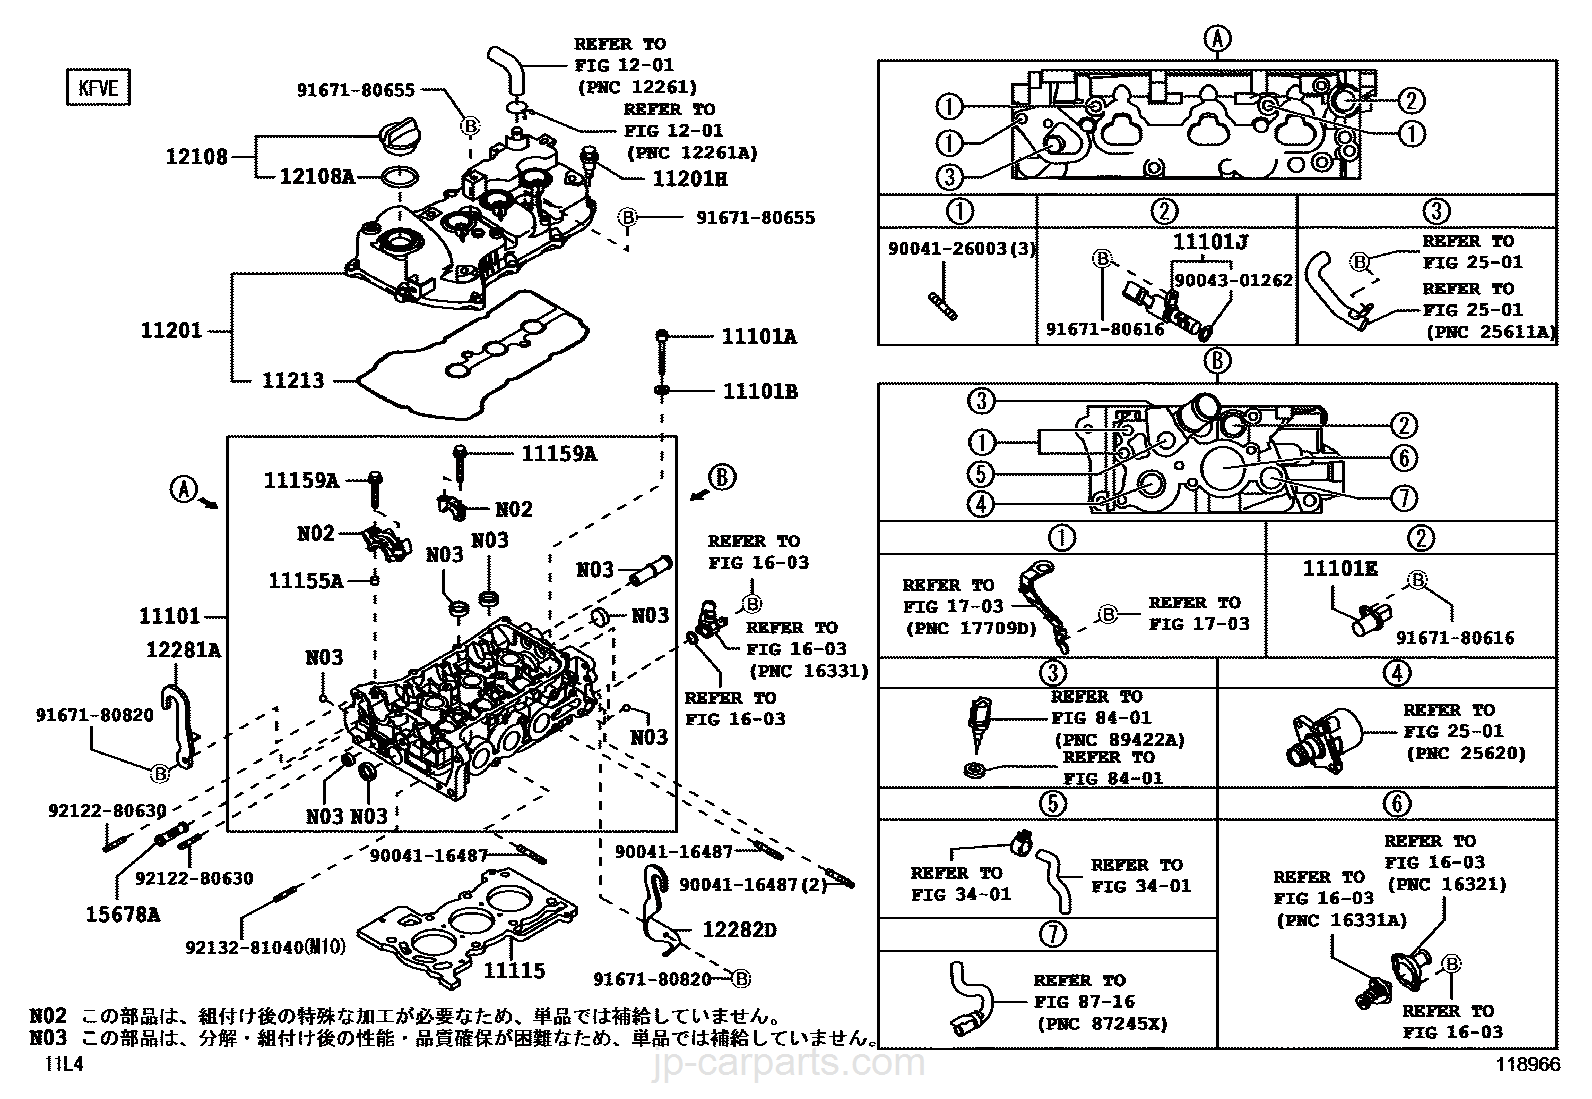 mazda r2 diesel engine manual pdf